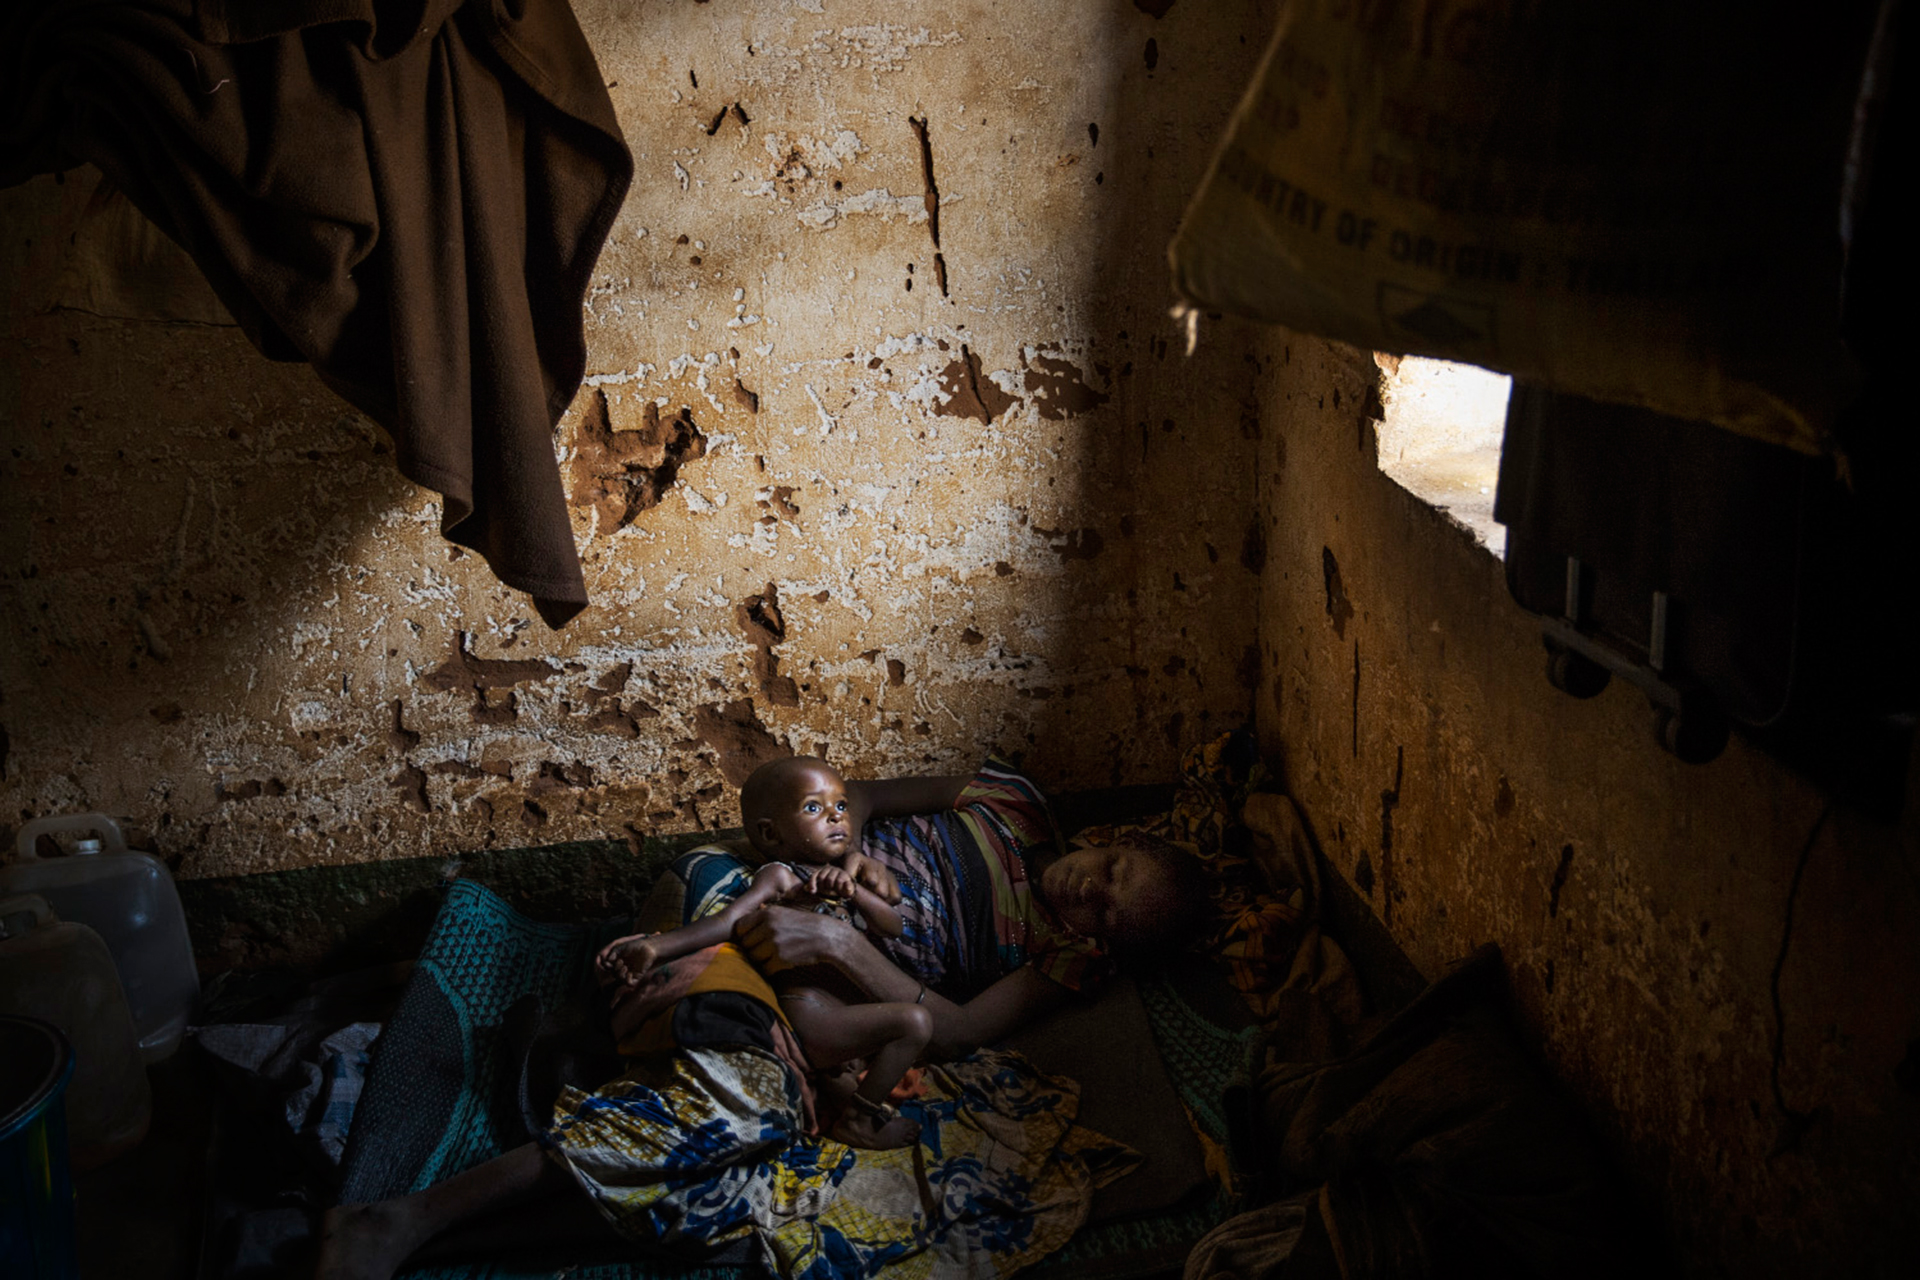 A child suffering from malnutrition with its mother in Yaloke, where around 500 Fulani -a Muslim tribe- live after being attacked by Anti-Balaka militiamen. © William Daniels/Panos Pictures.